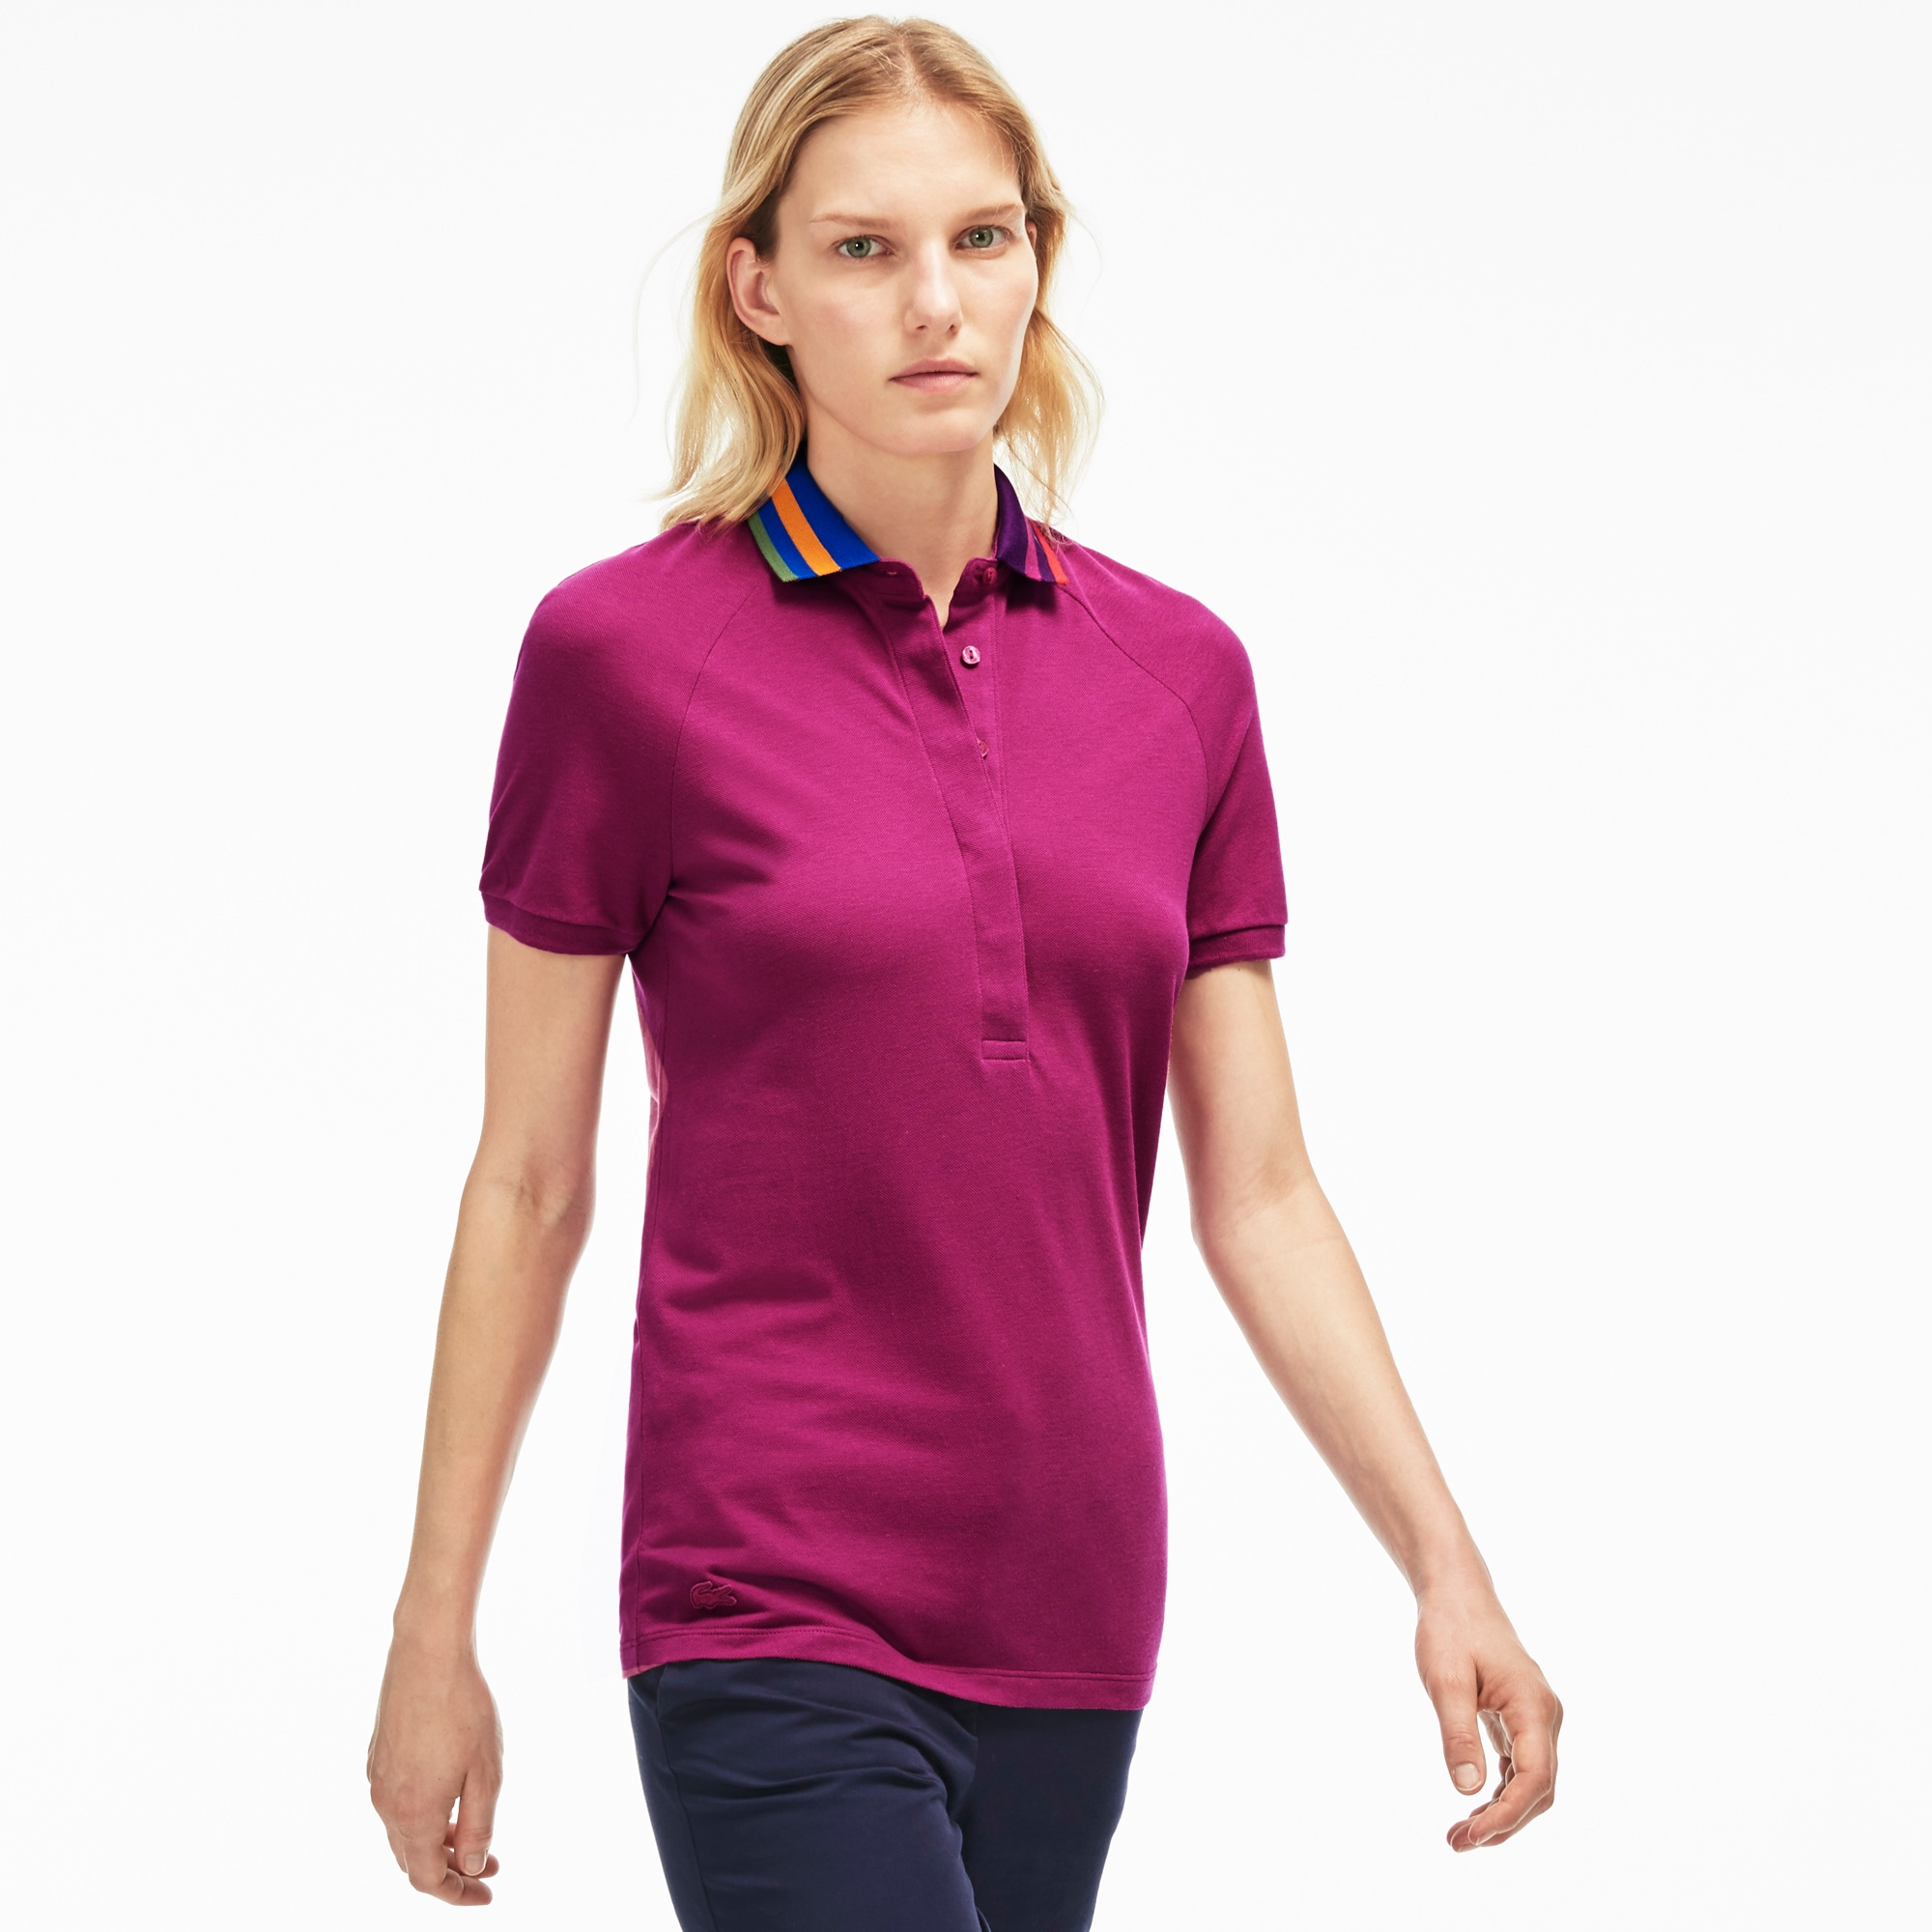 Women's Slim Fit Stretch Petit Piqué Flag Print Collar Polo Shirt